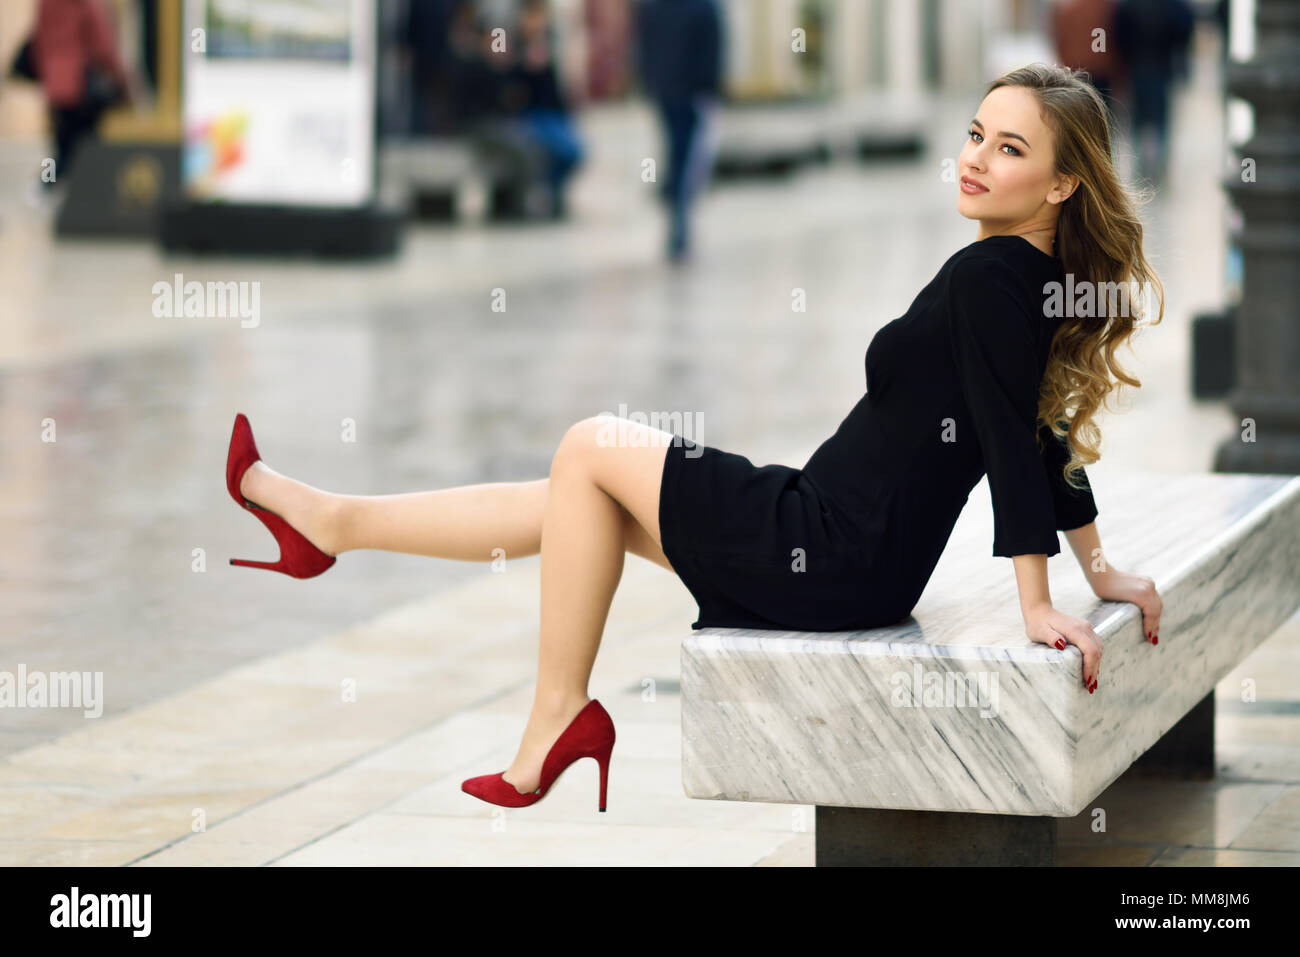 1c9a5a757 Funny blonde woman with beautiful legs in urban background. Beautiful young  girl wearing black elegant